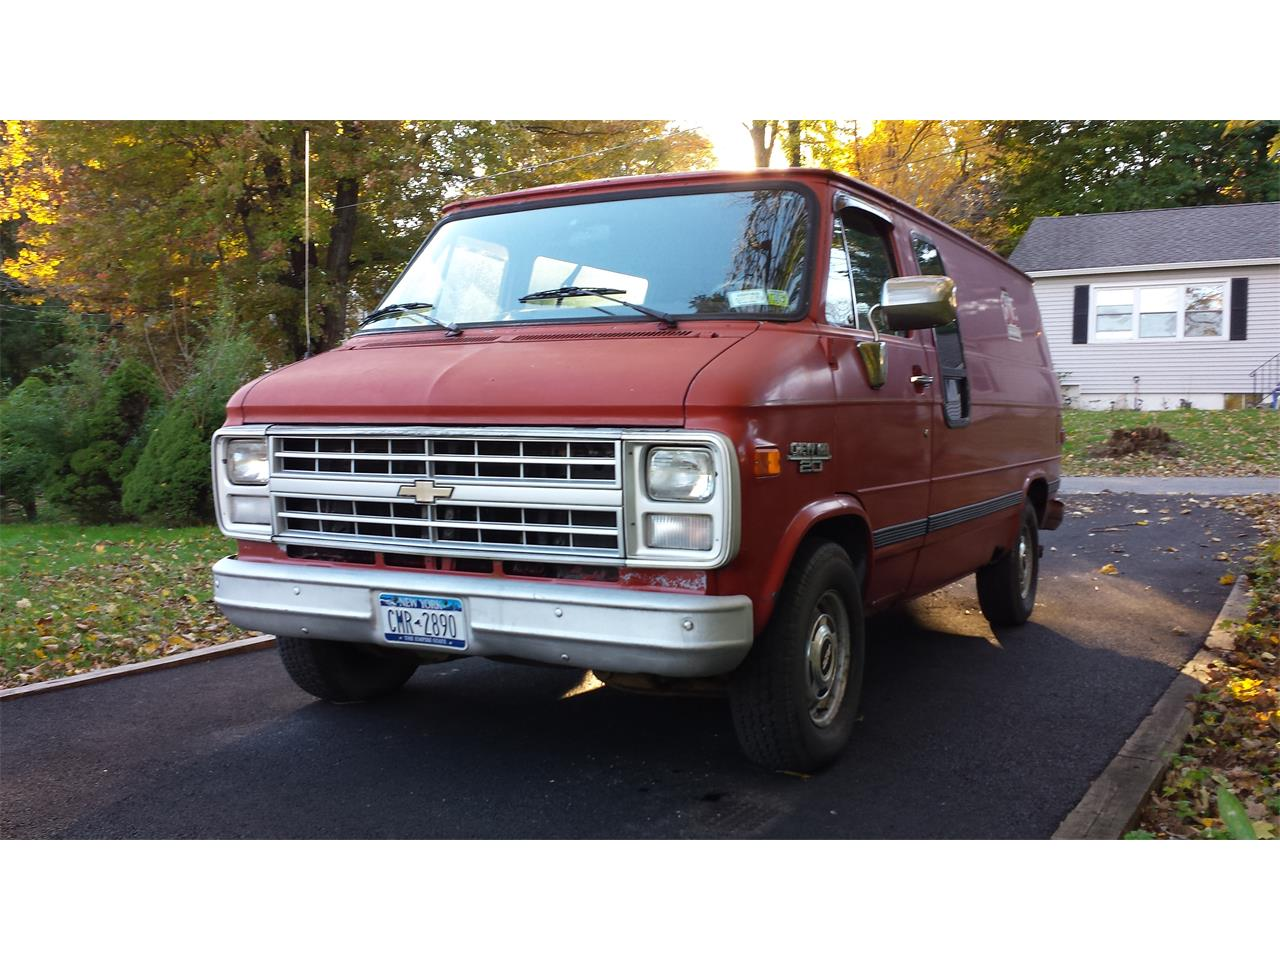 1988 Chevrolet G20 for sale in Carmel, NY